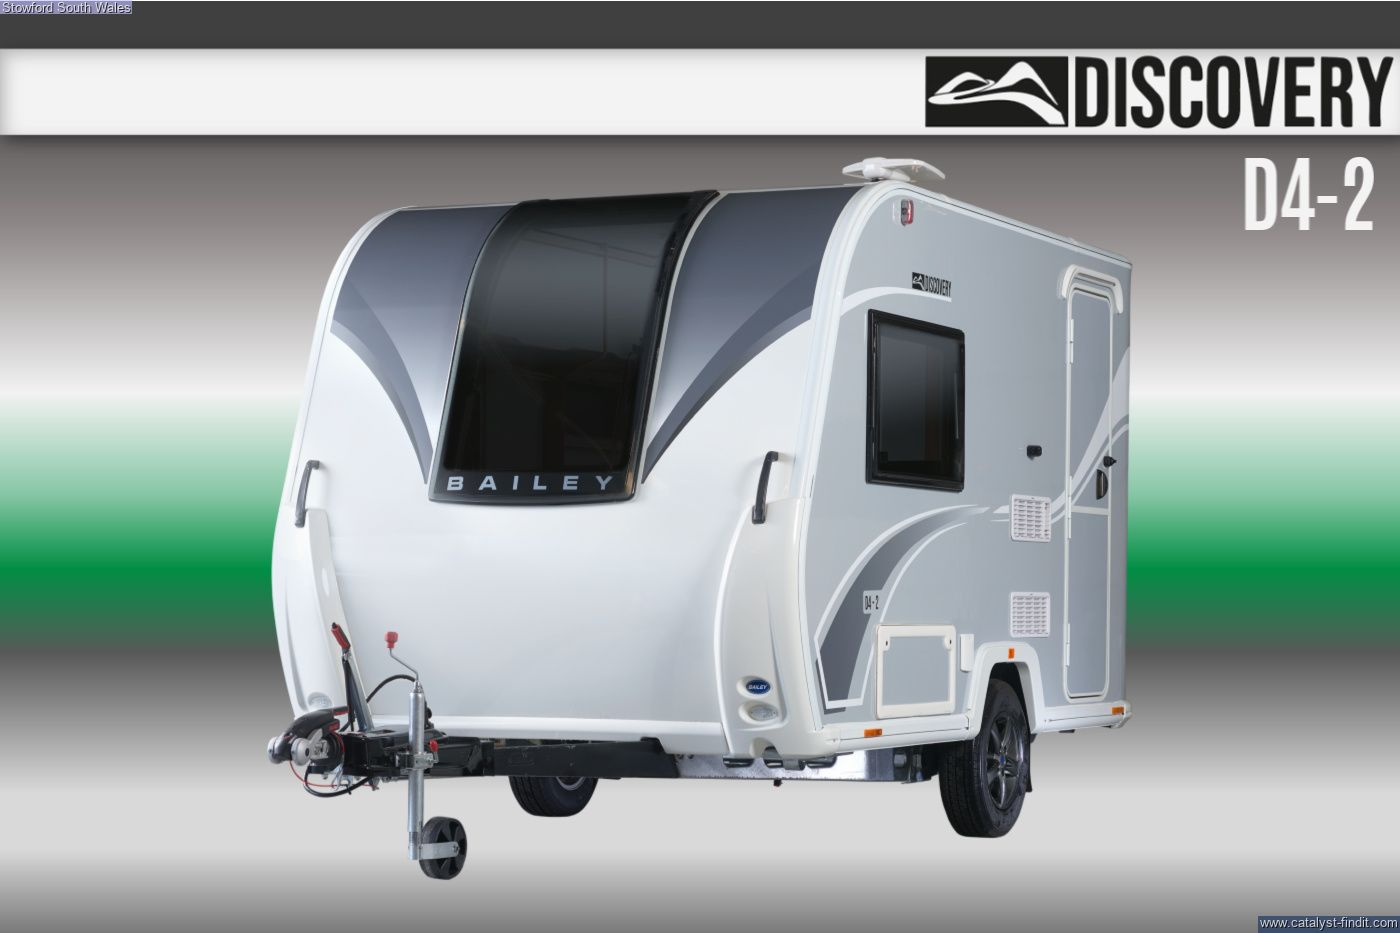 Bailey Discovery D4-2 2022